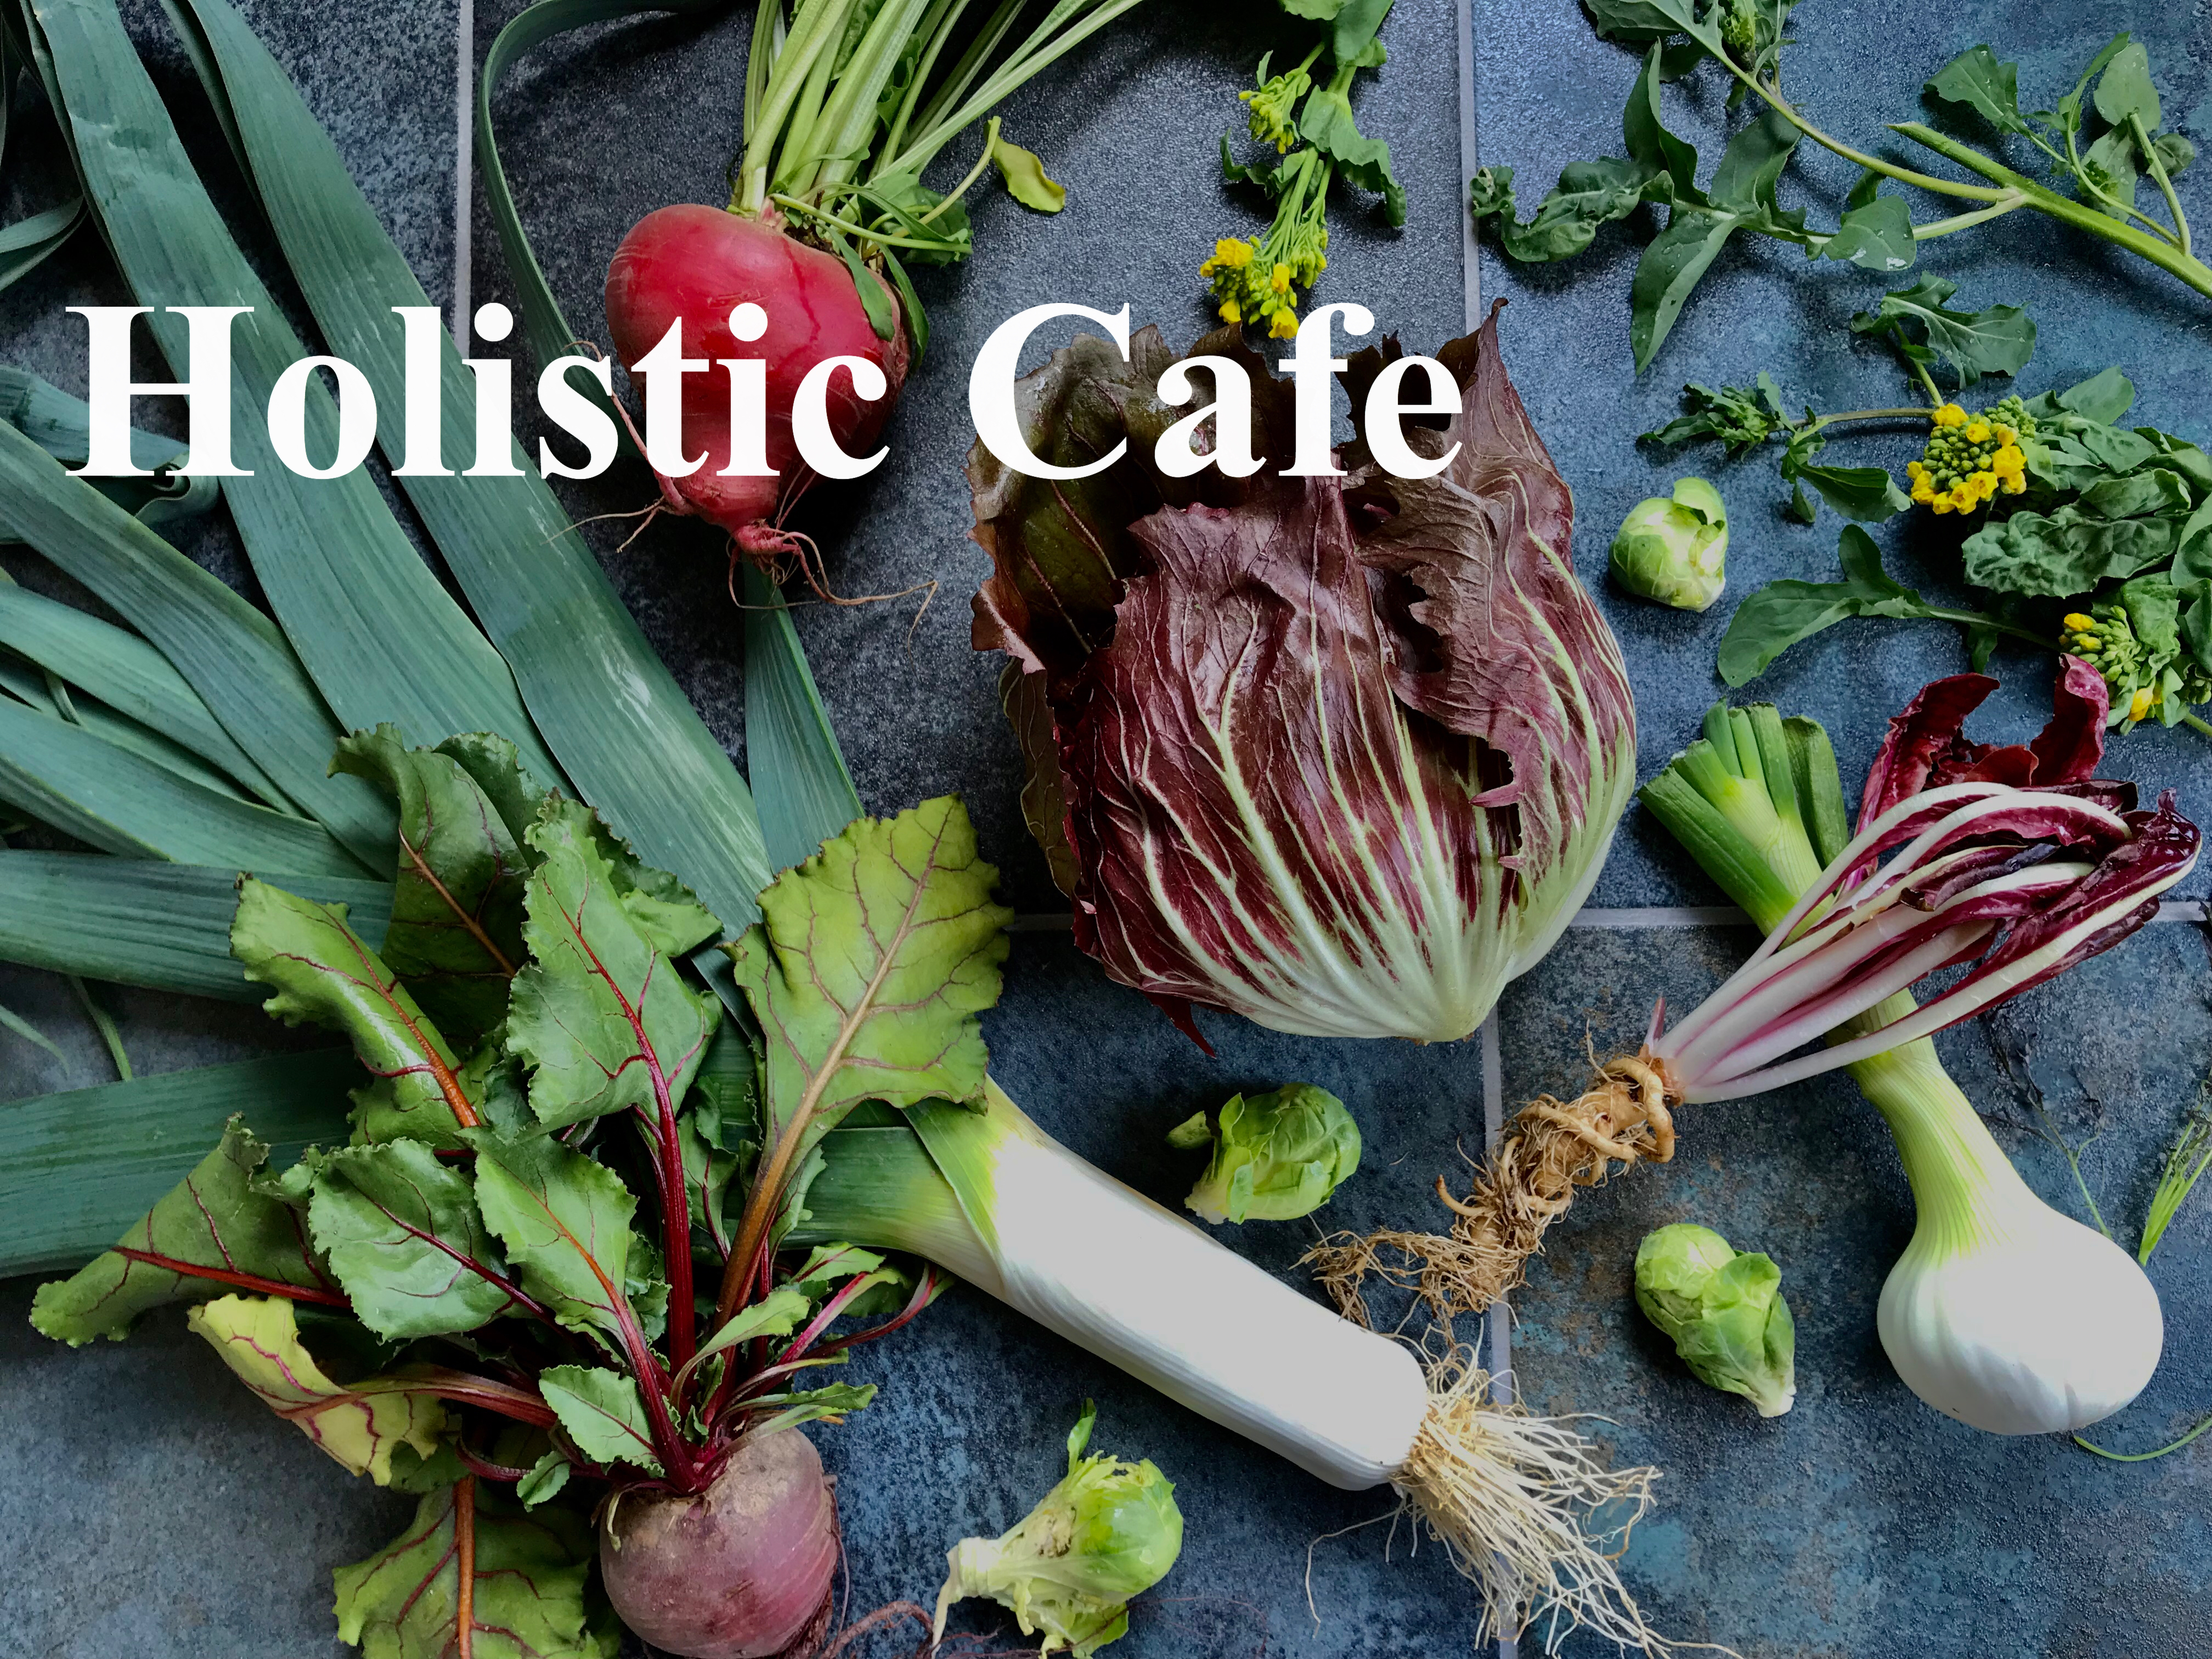 Holistic Cafe